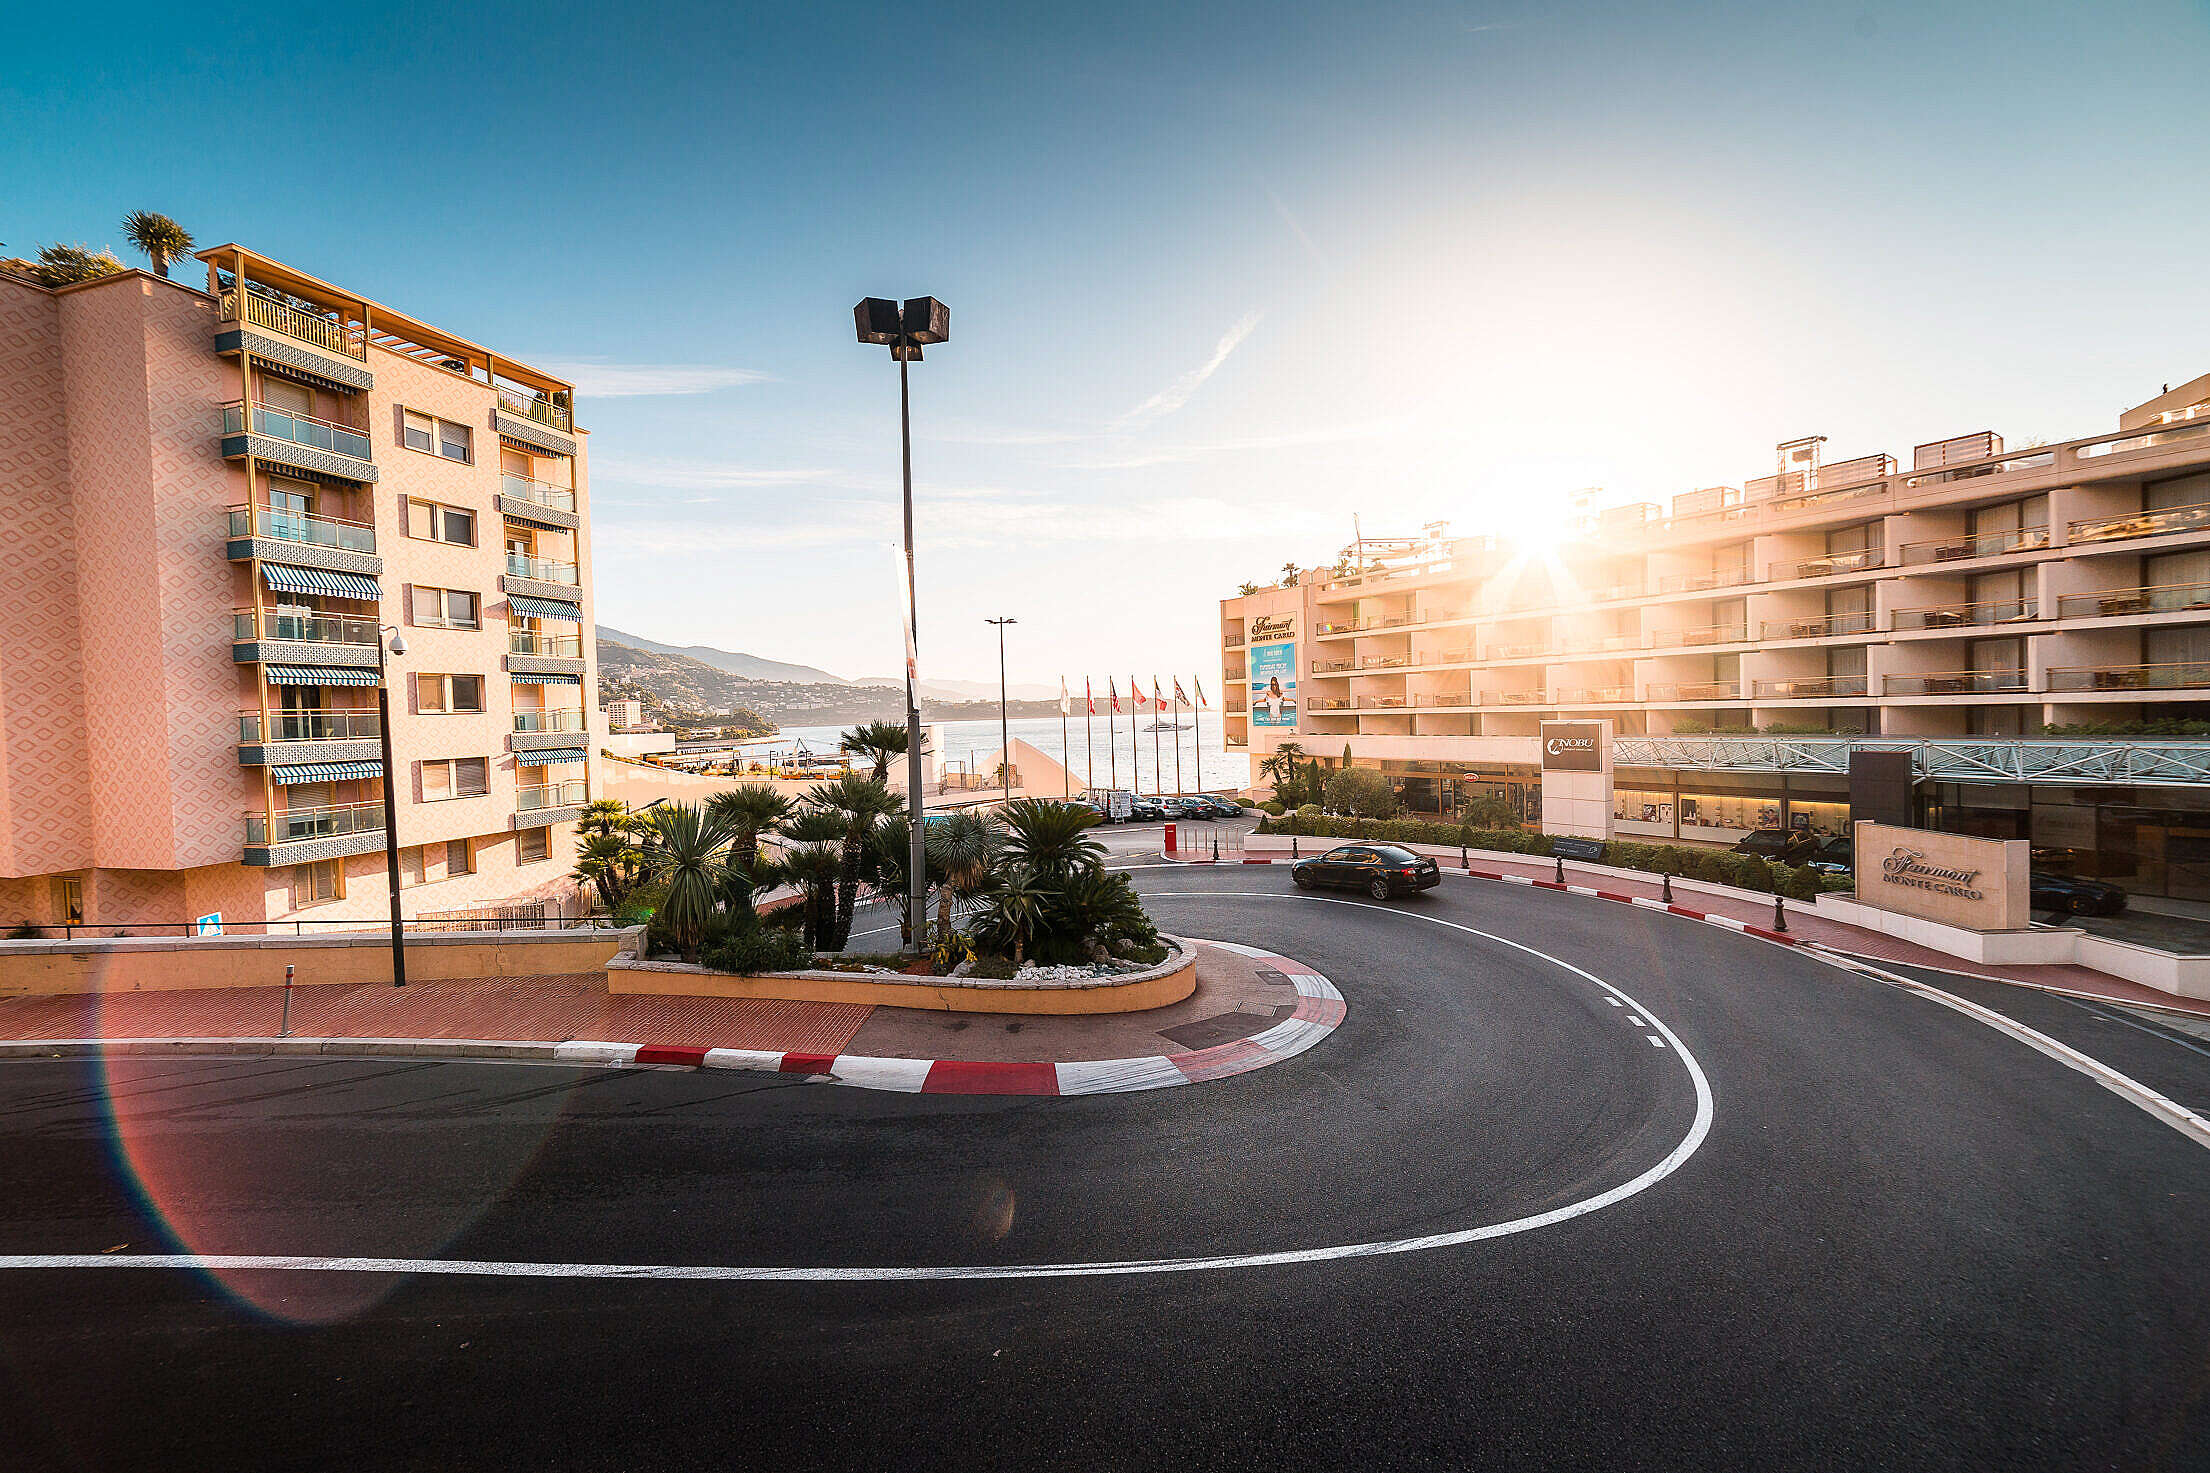 Fairmont Hairpin The Worlds Most Famous Bend, Monte Carlo Free Stock Photo